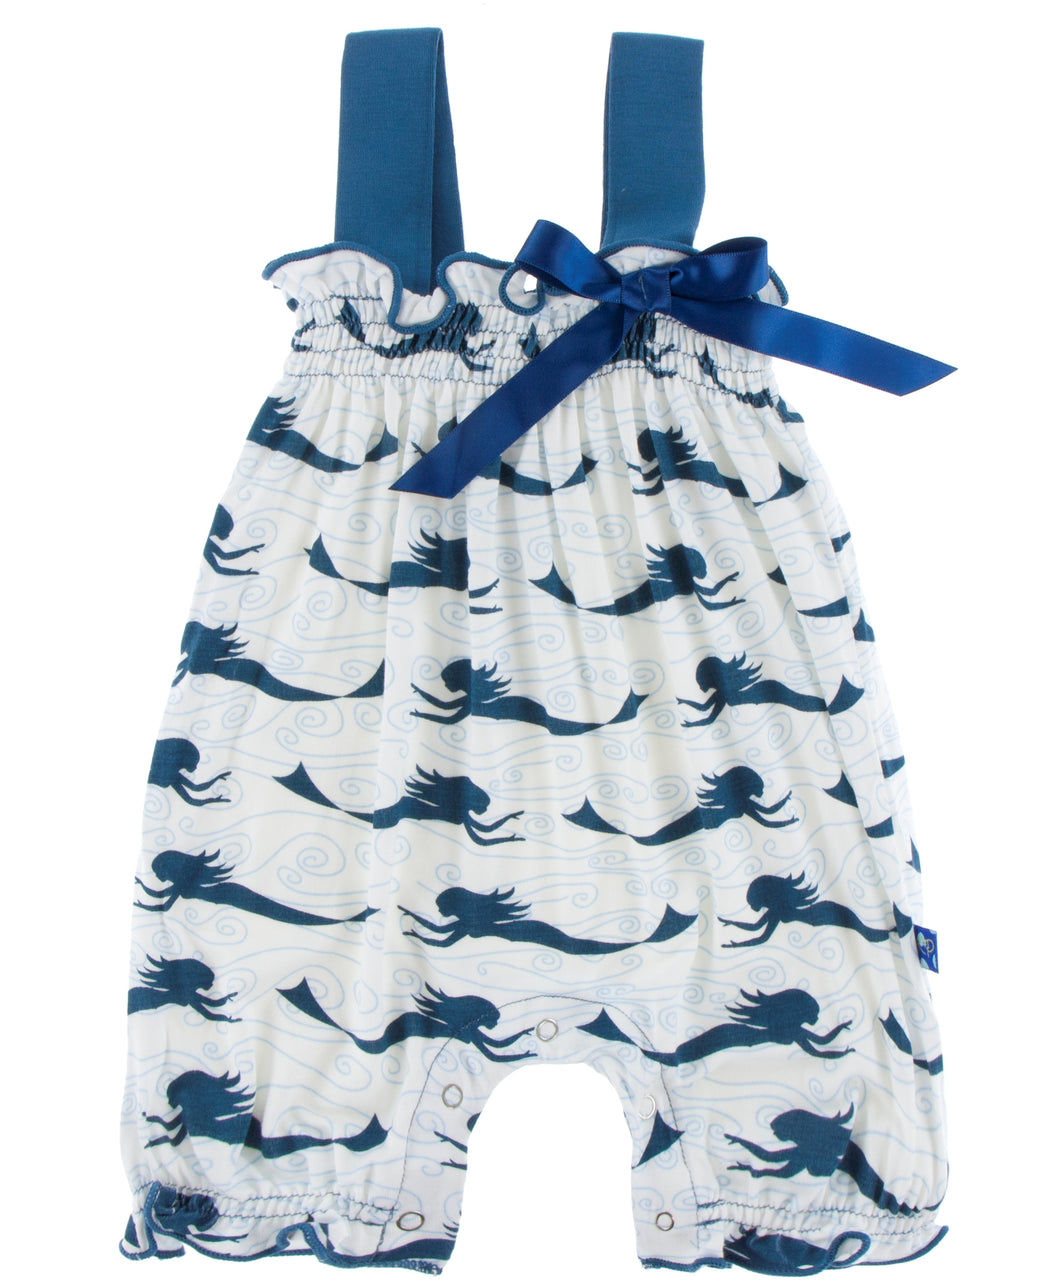 KicKee Pants Gathered Romper with Bow - Natural Mermaid